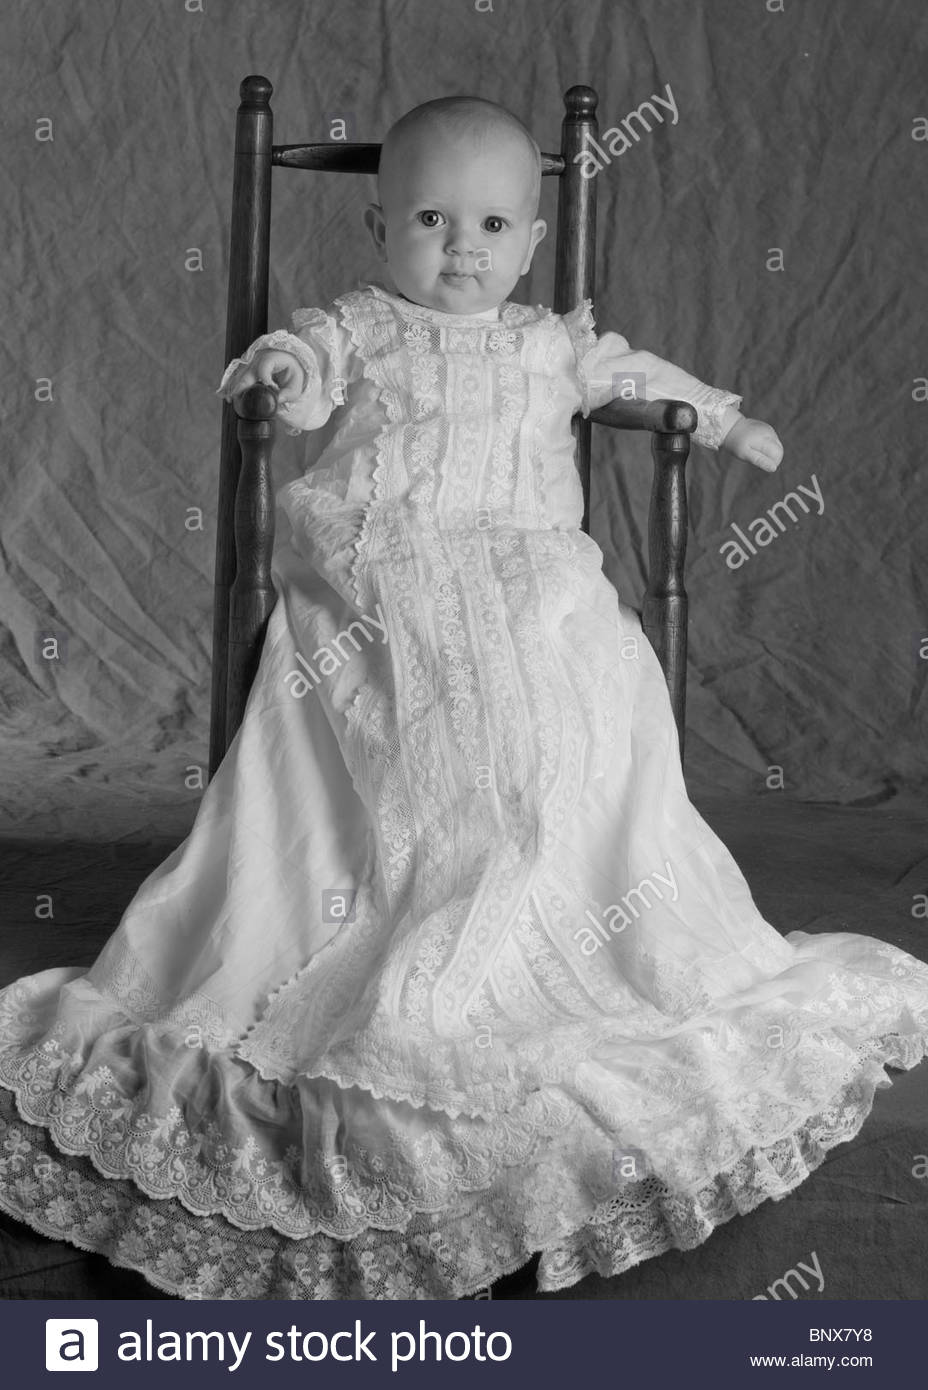 Black child sitting in chair - Baby Girl Sitting In Antique Chair In Her Christening Gown Stock Image